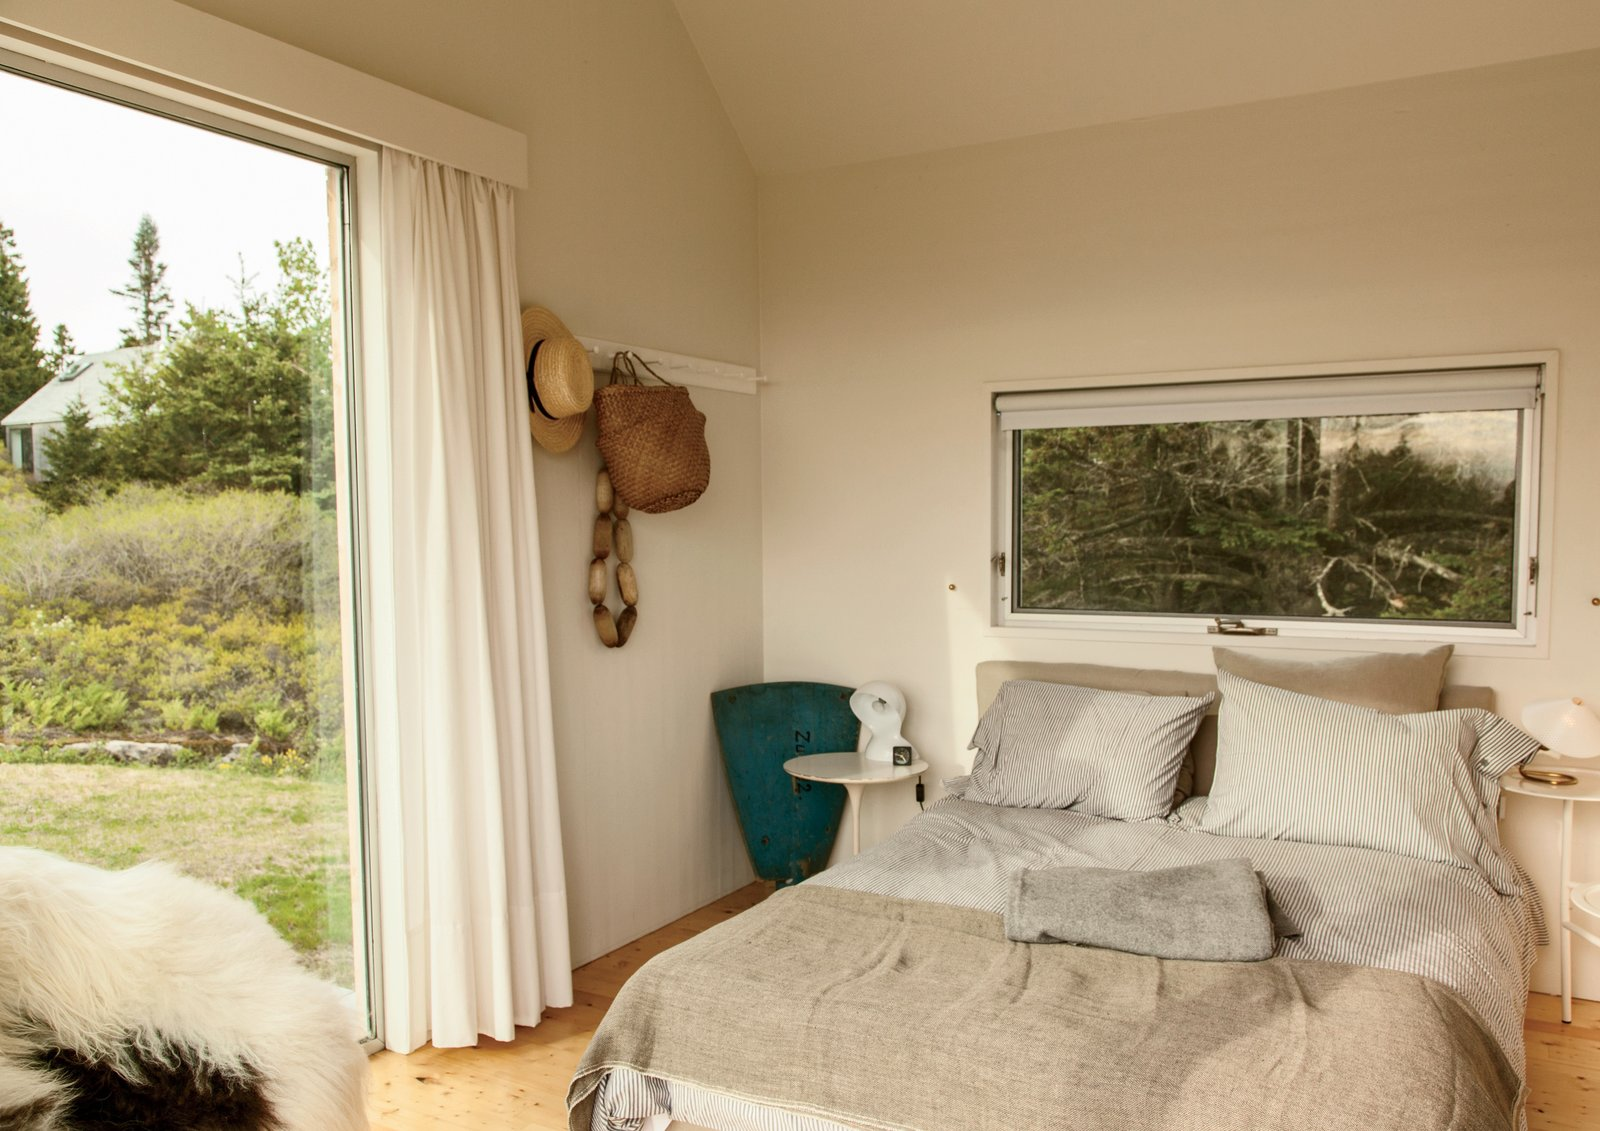 Situated between the main living space and the other bedroom, the middle cabin is furnished with a Calder side table by Konstantin Grcic, a vintage Dalu lamp by Vico Magistretti, and handwoven blankets from Swans Island Company.  Bedrooms by Dwell from A Cluster of Cabins in a Former Quarry Makes a Simple Vacation Escape